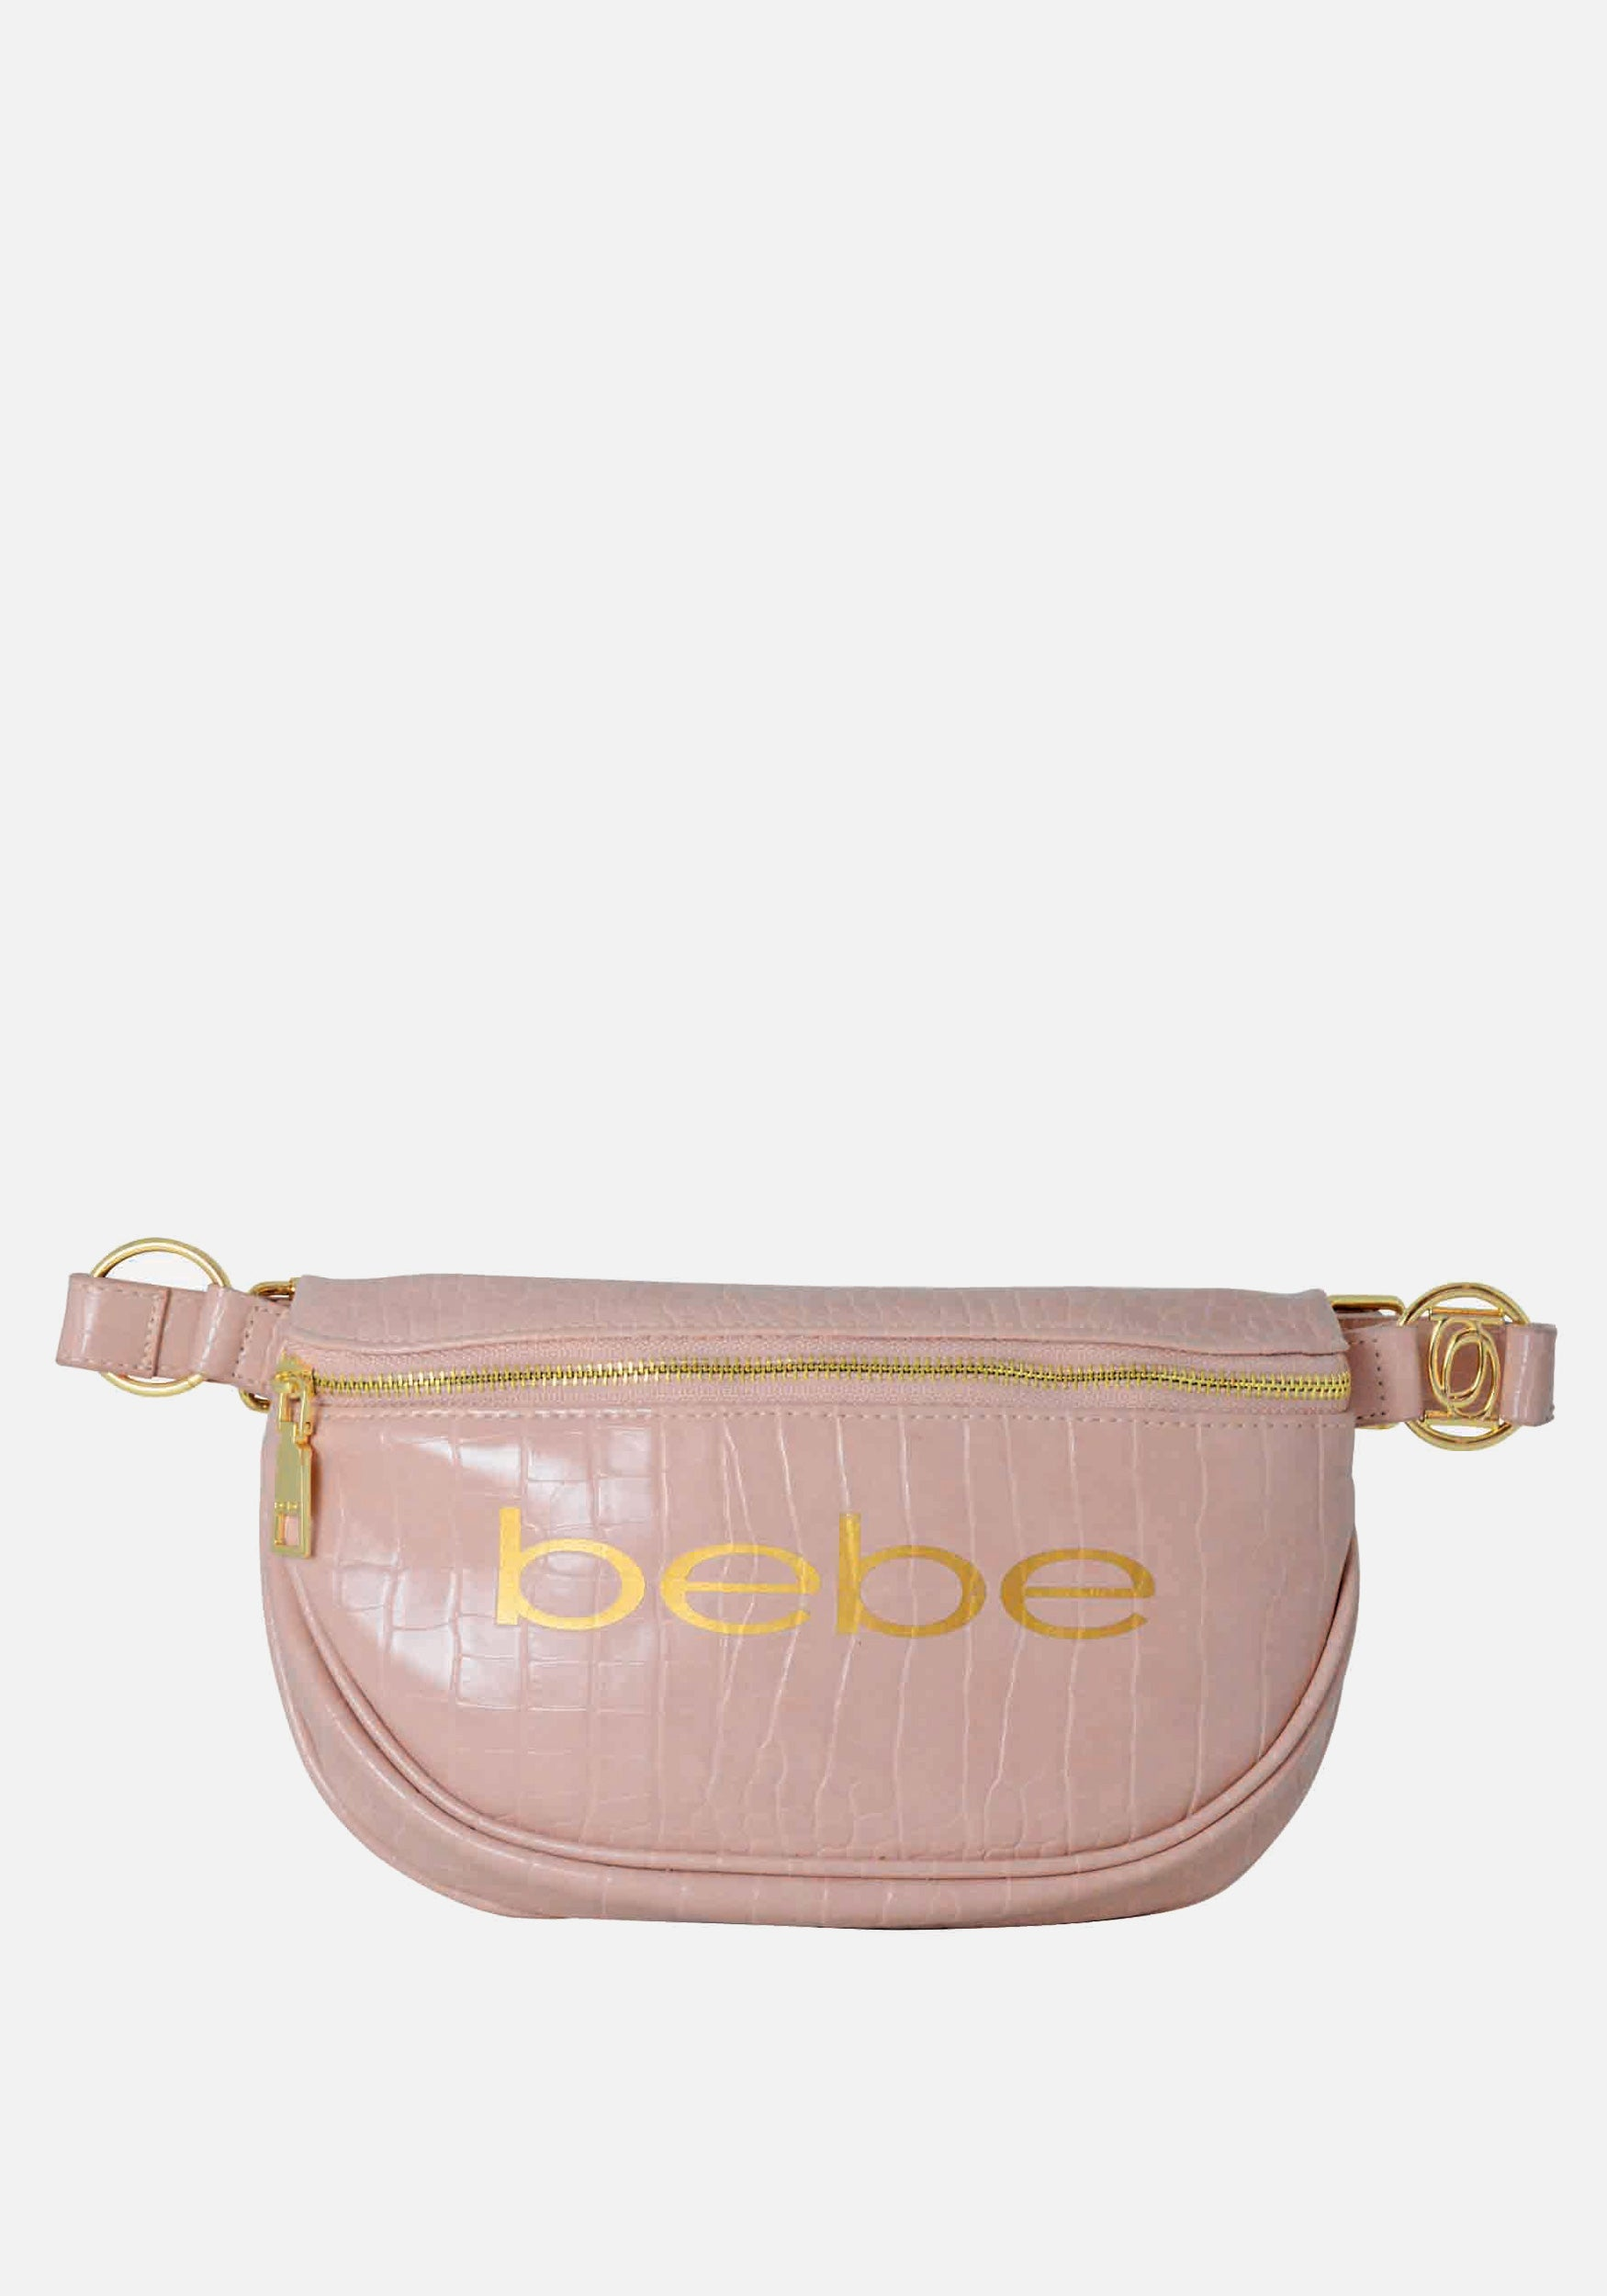 Bebe coupon: Bebe Women's Josephine Croco Convertible Sling in Dusty Pink Polyester